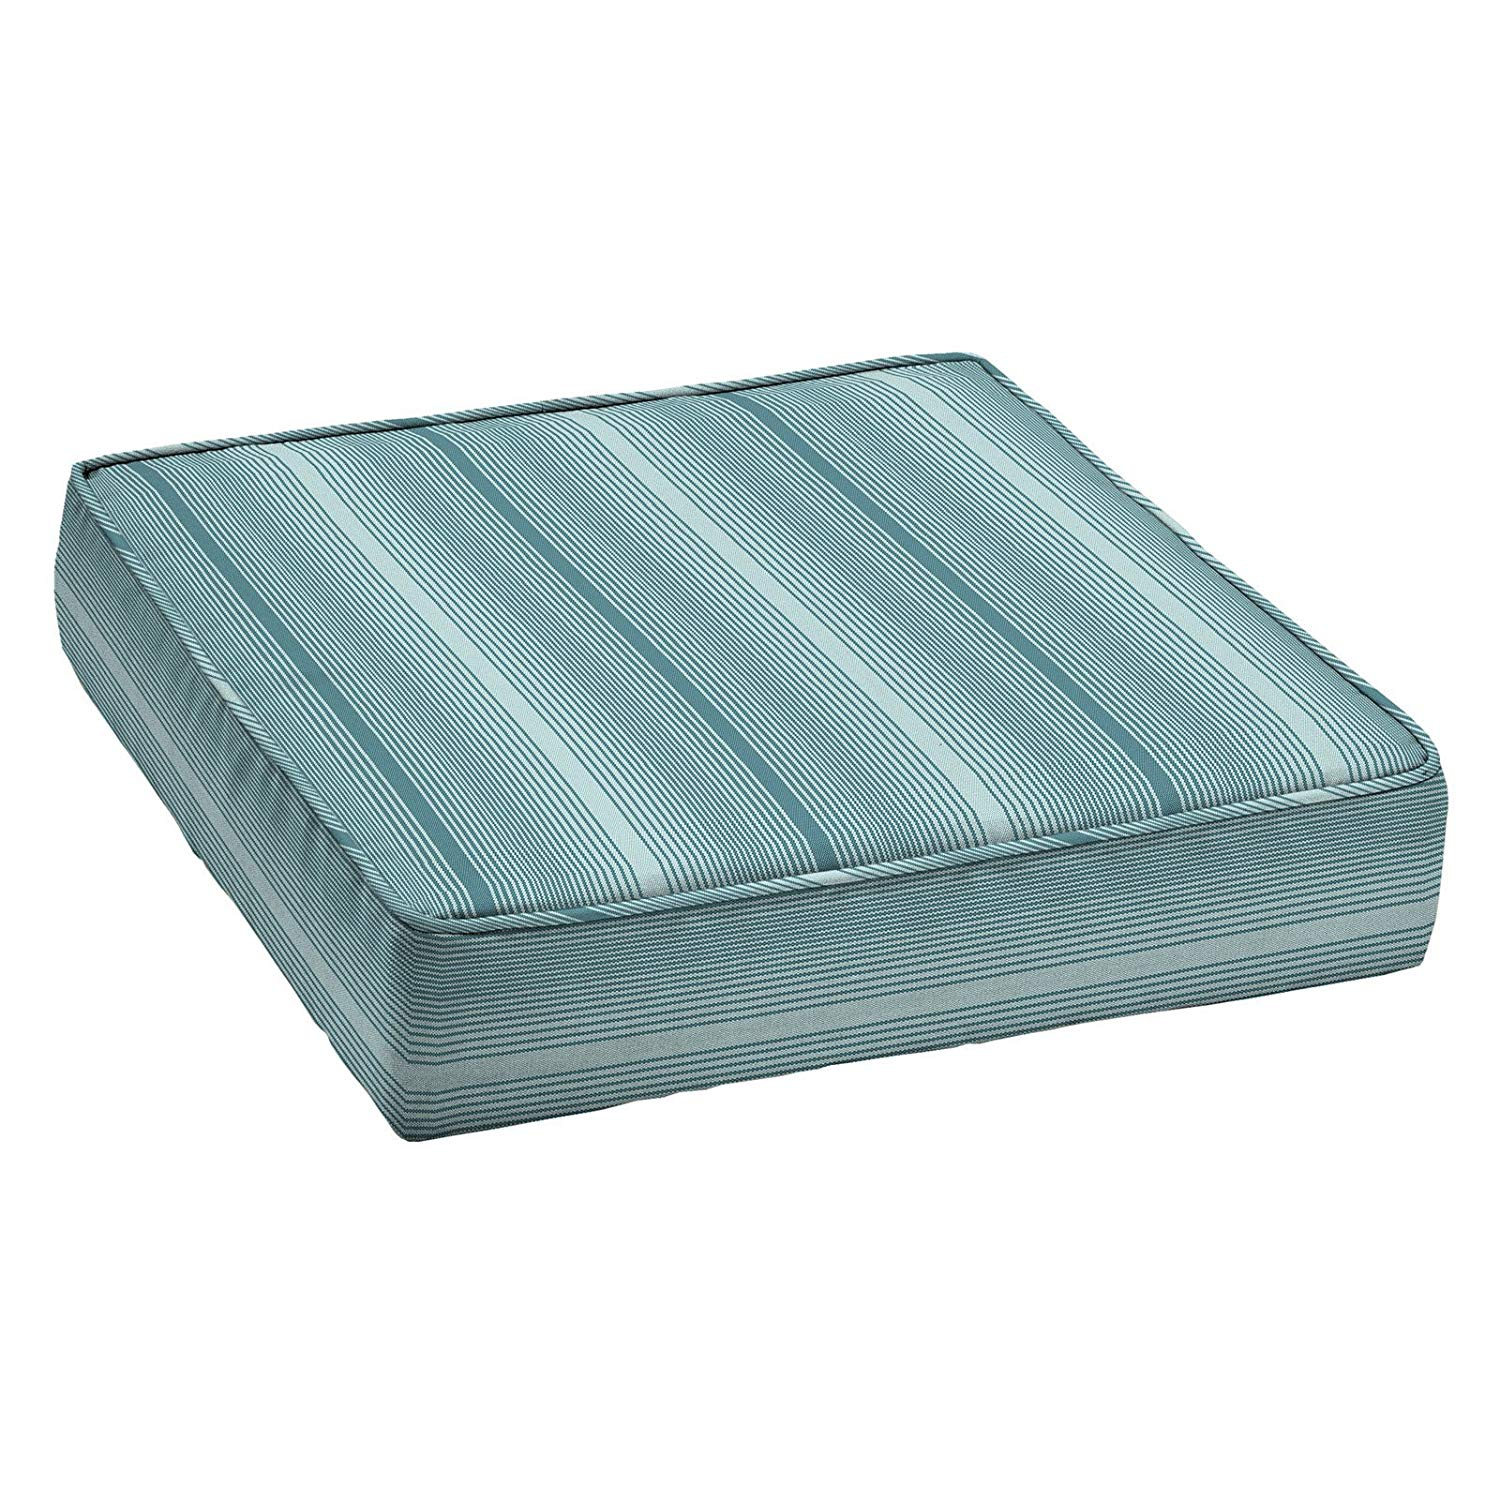 Home Improvements Teal Stripe Premium Acrylic 24 x 24 Outdoor Deep Seat Cushion Patio Deep Seating Chair Cushion